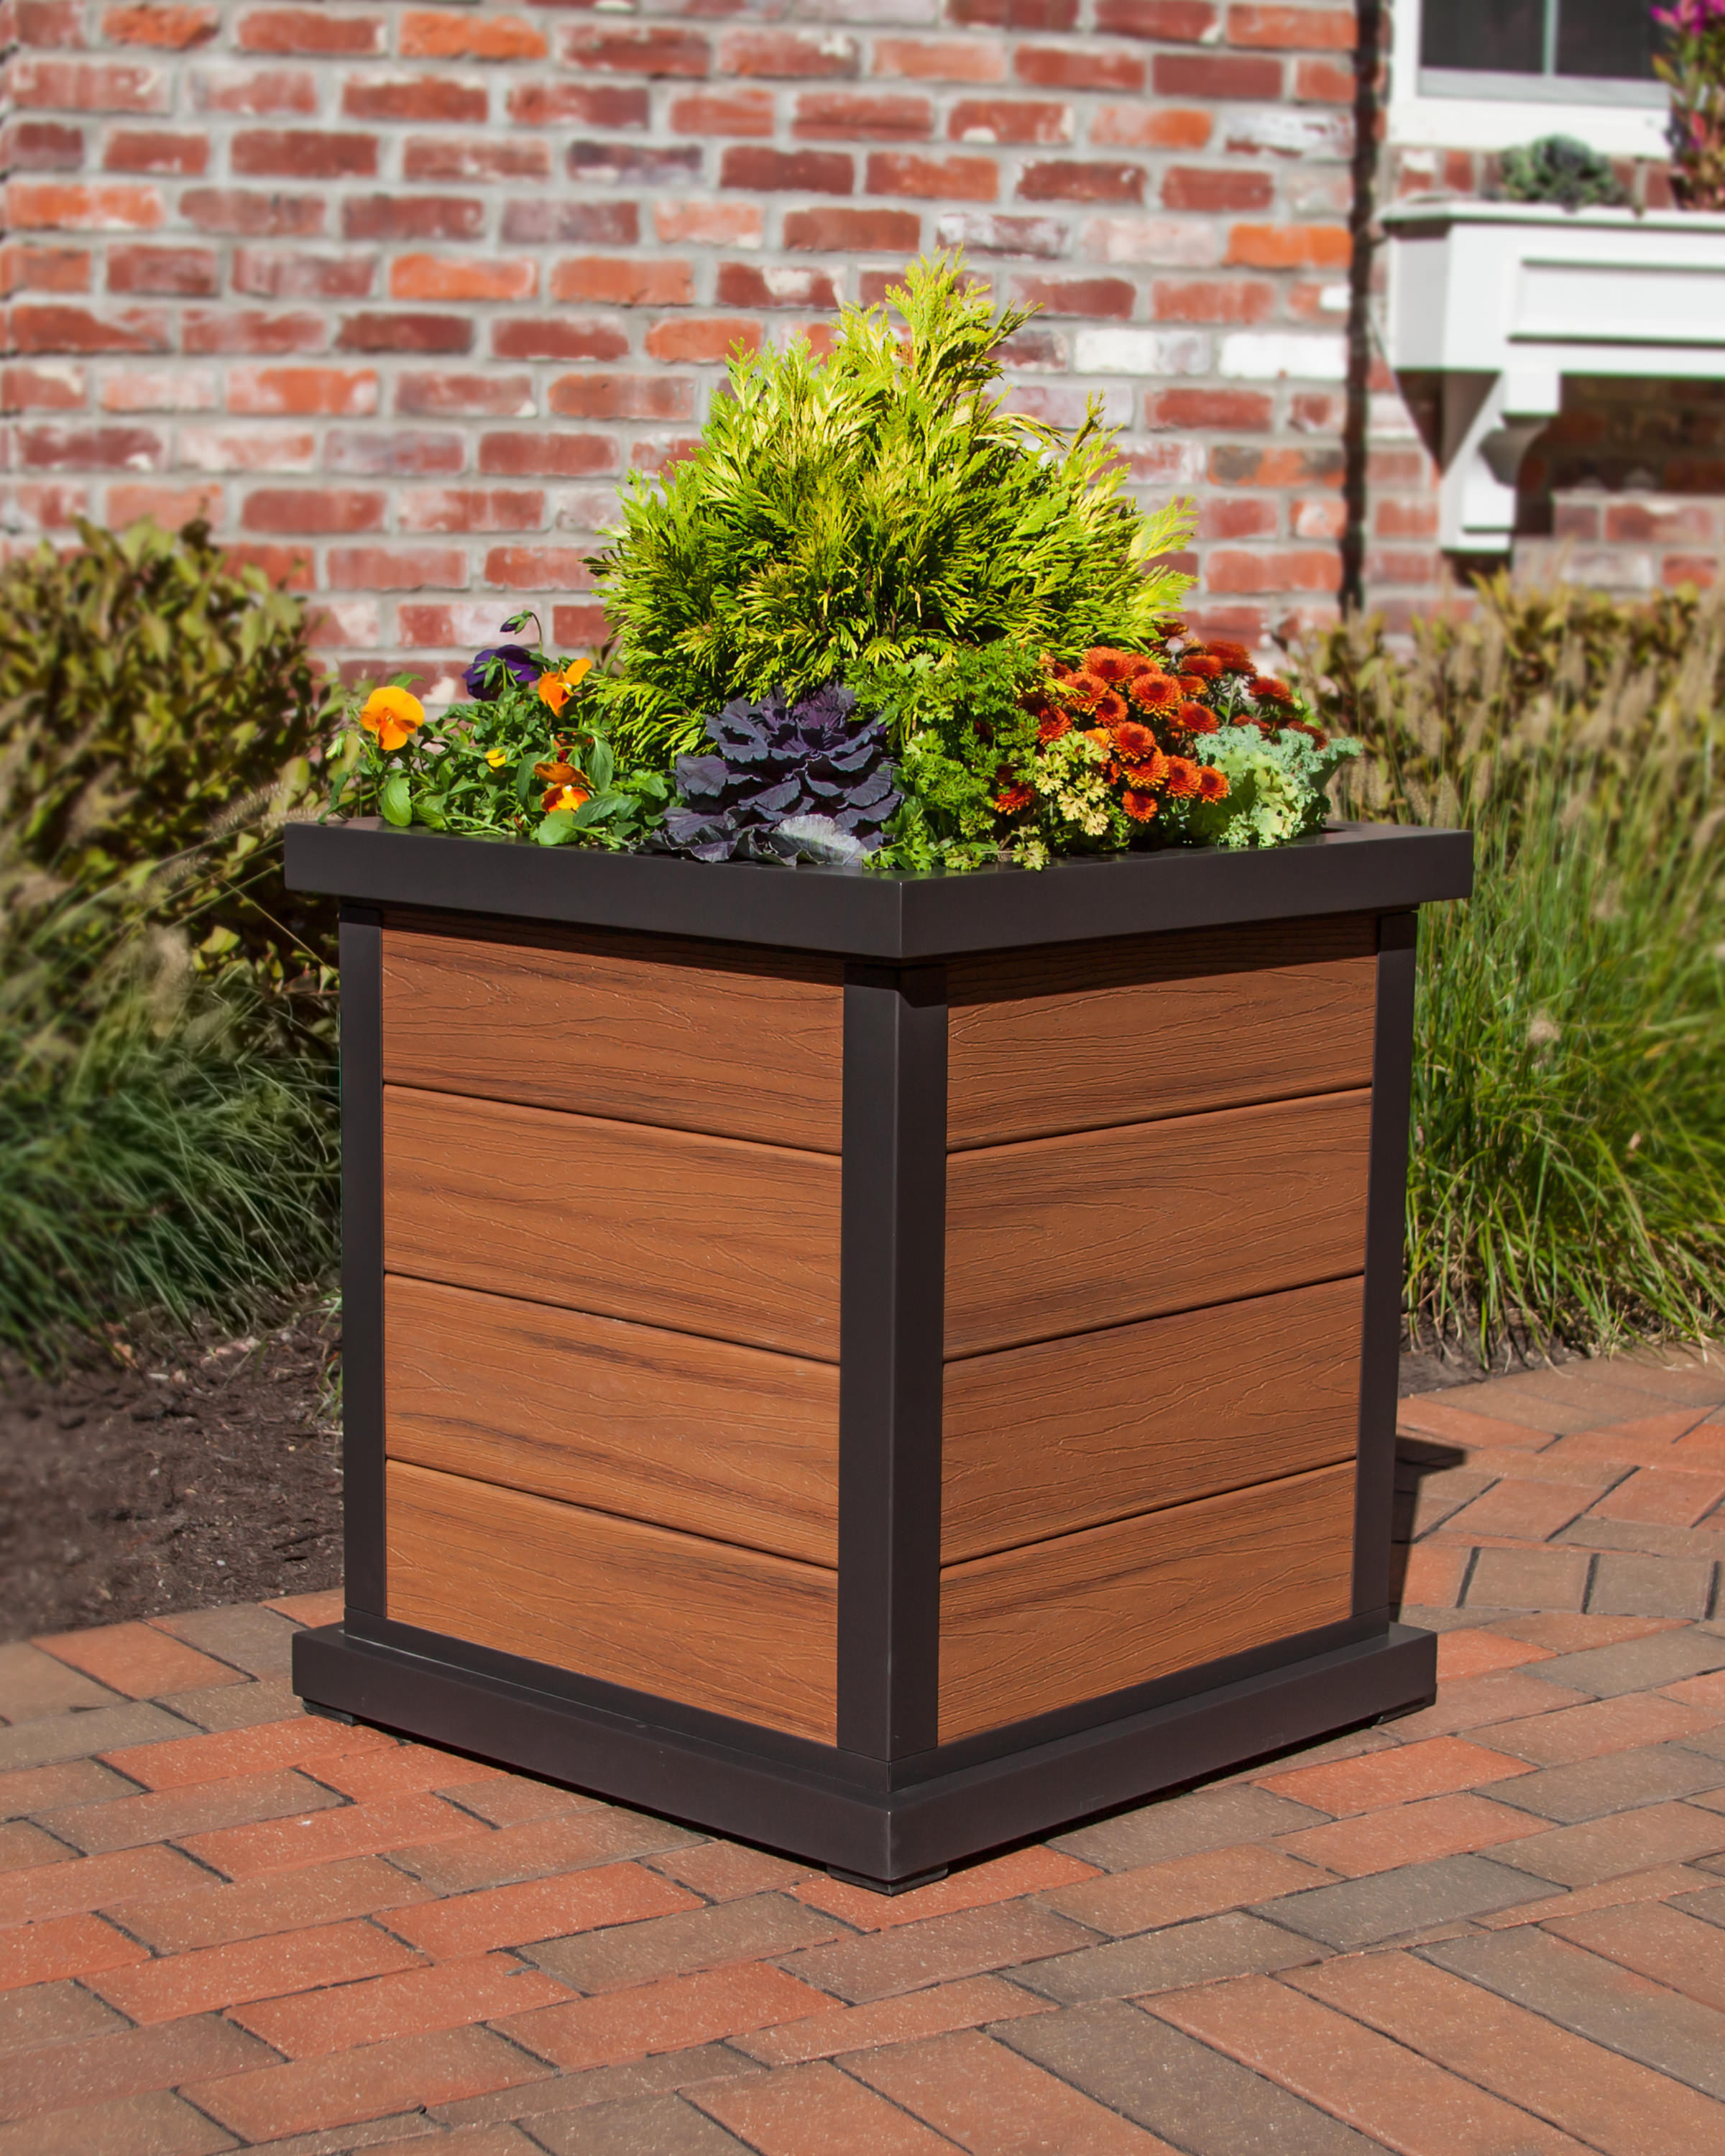 Composite Pvc Planter Boxes For Decks And Patios: Trex® Outdoor Furniture Cube 24 In Planter 4-Board